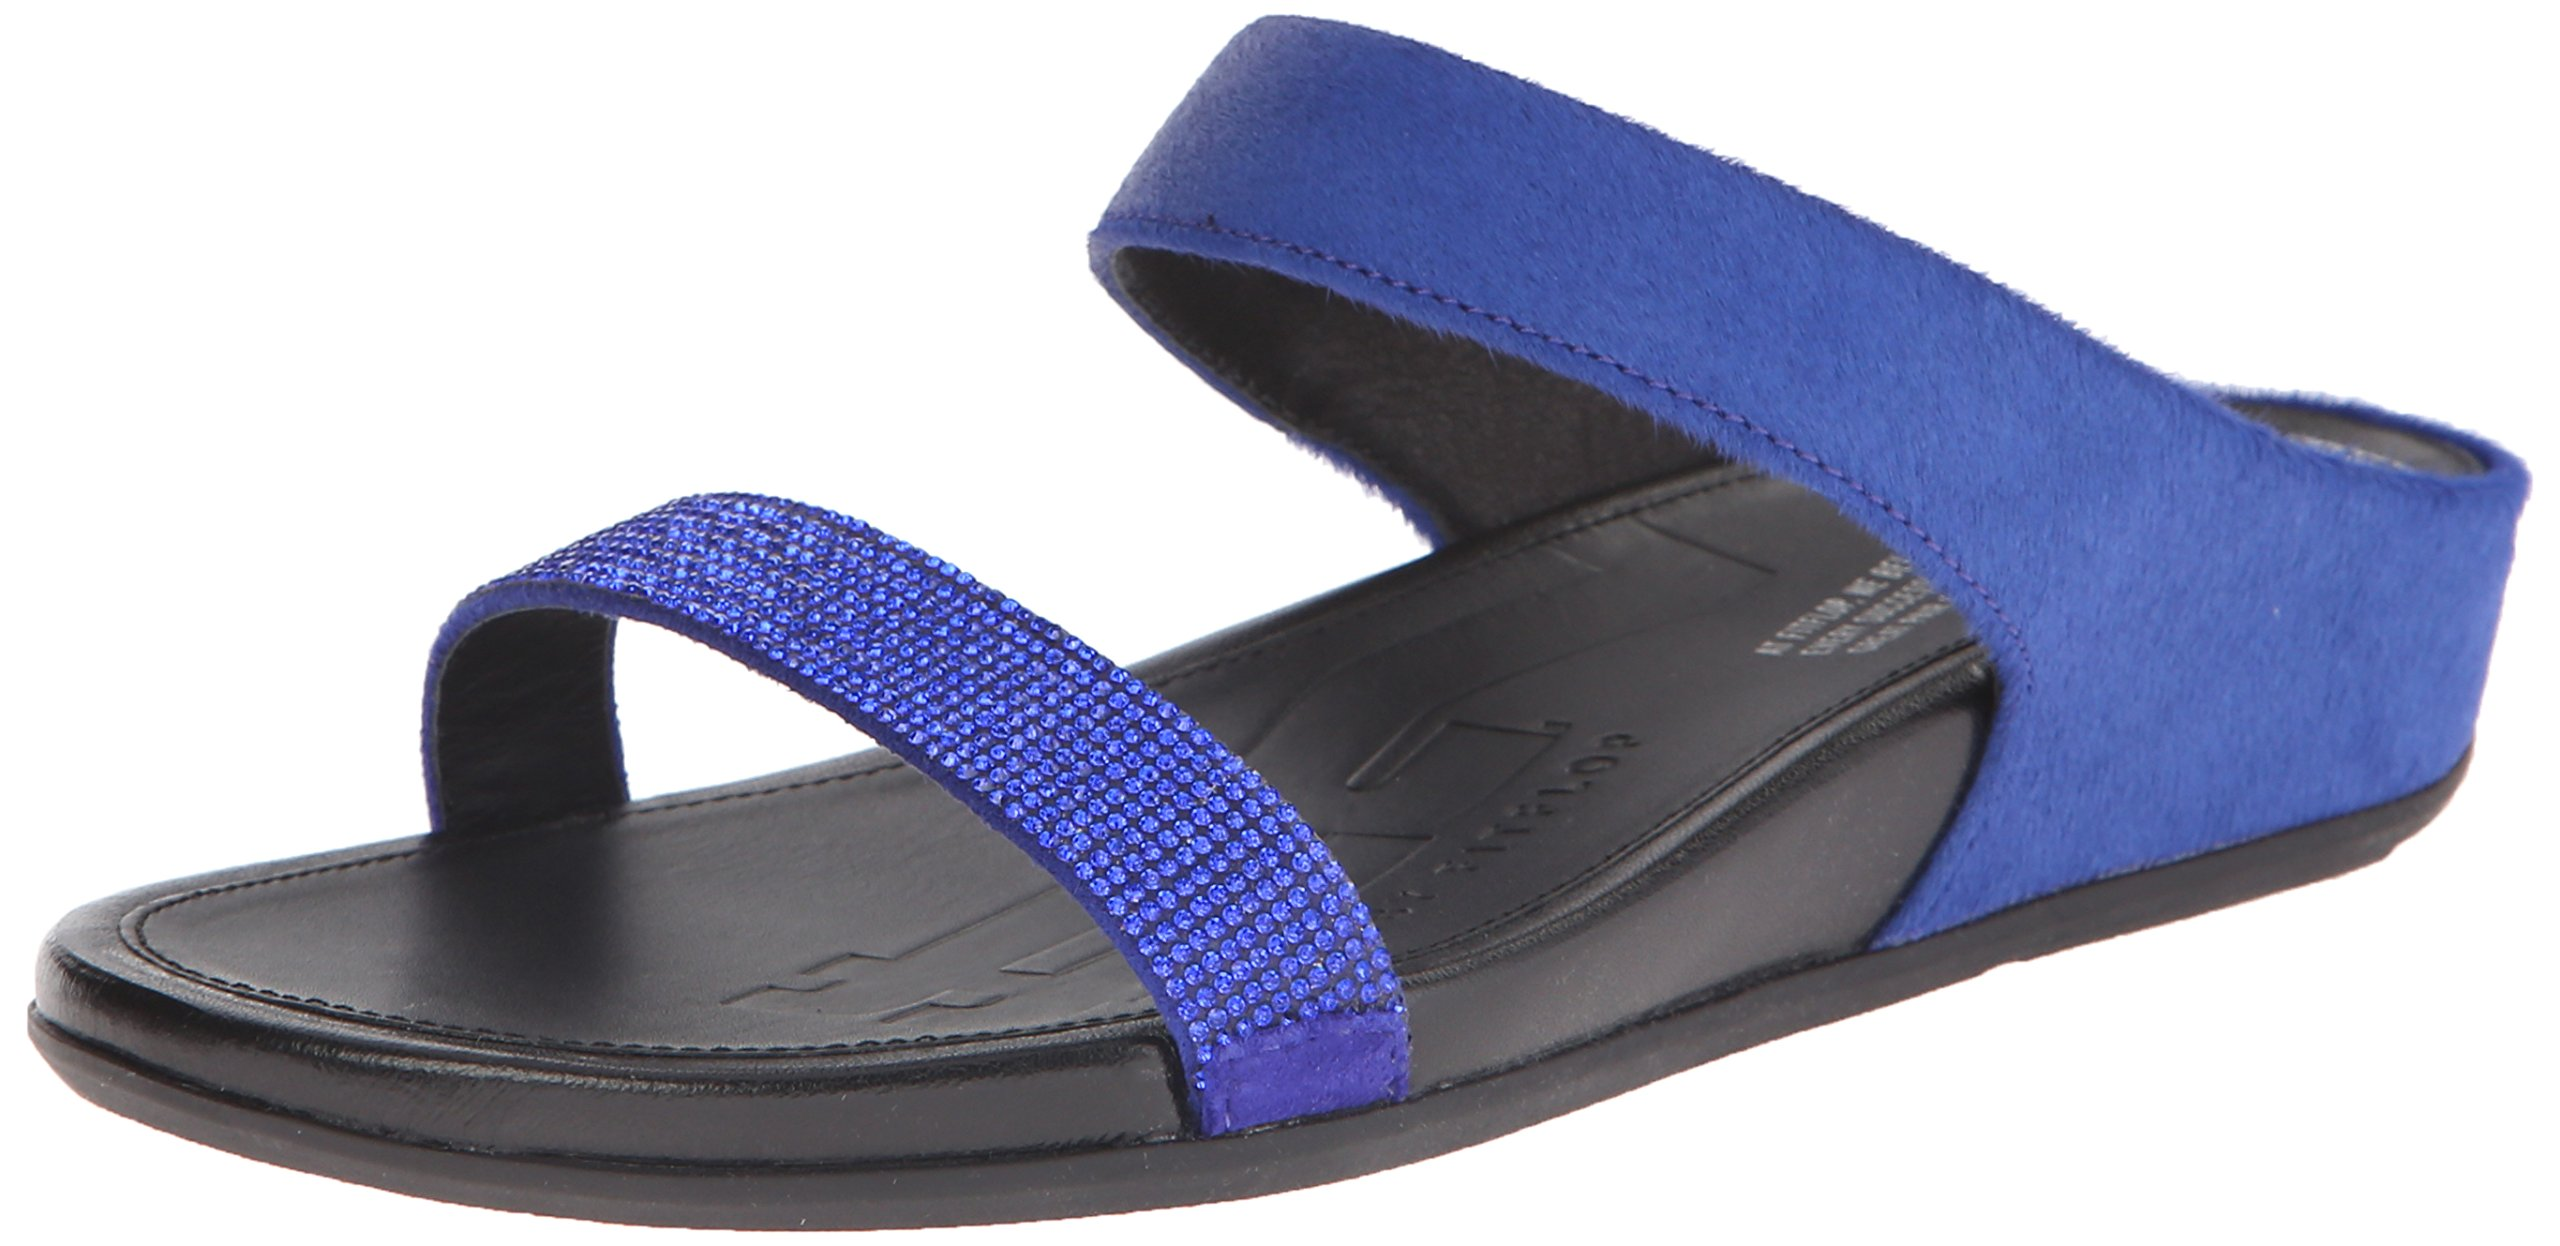 FitFlop Women's Banda Micro Crystal Slide Dress Sandal, Mazarin Blue, 9 M US